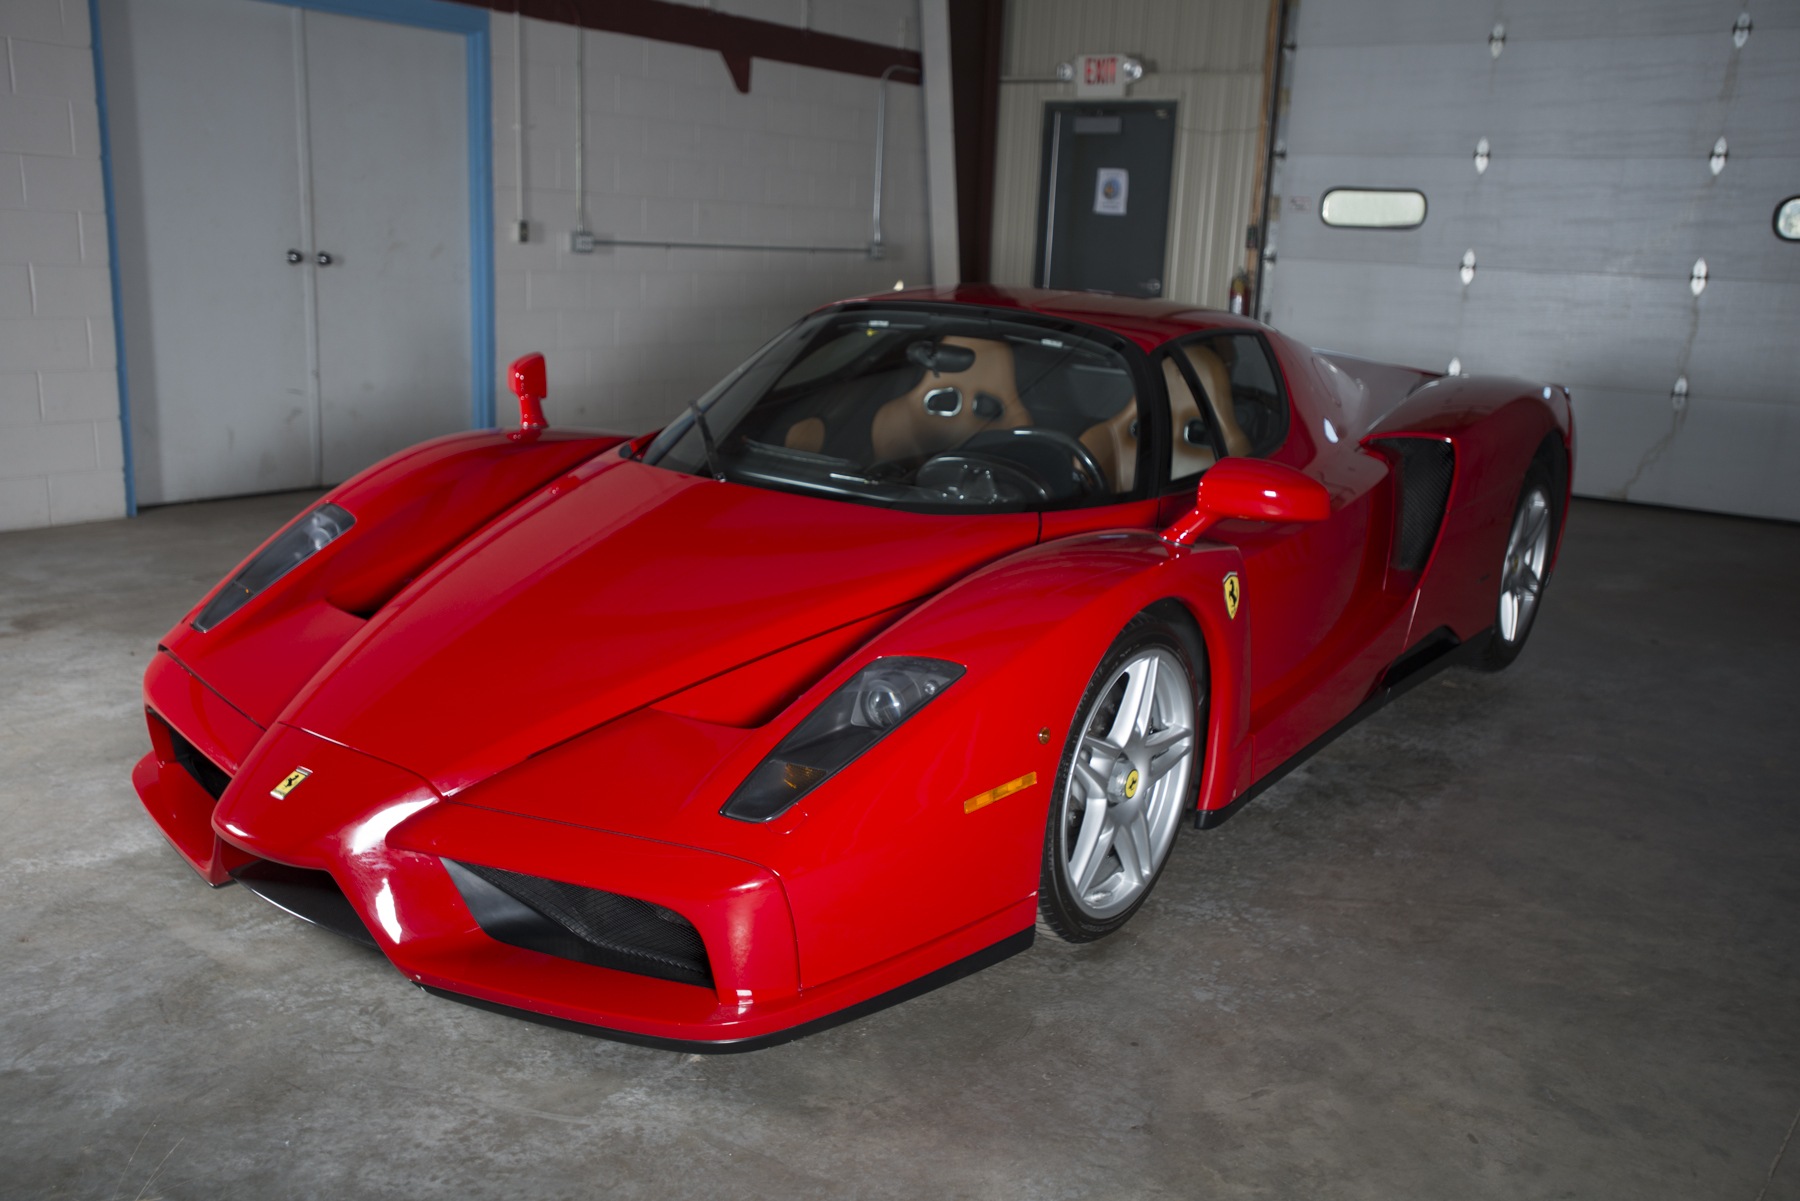 Take A Closer Look At The Ferrari Enzo, Lot #26520334: